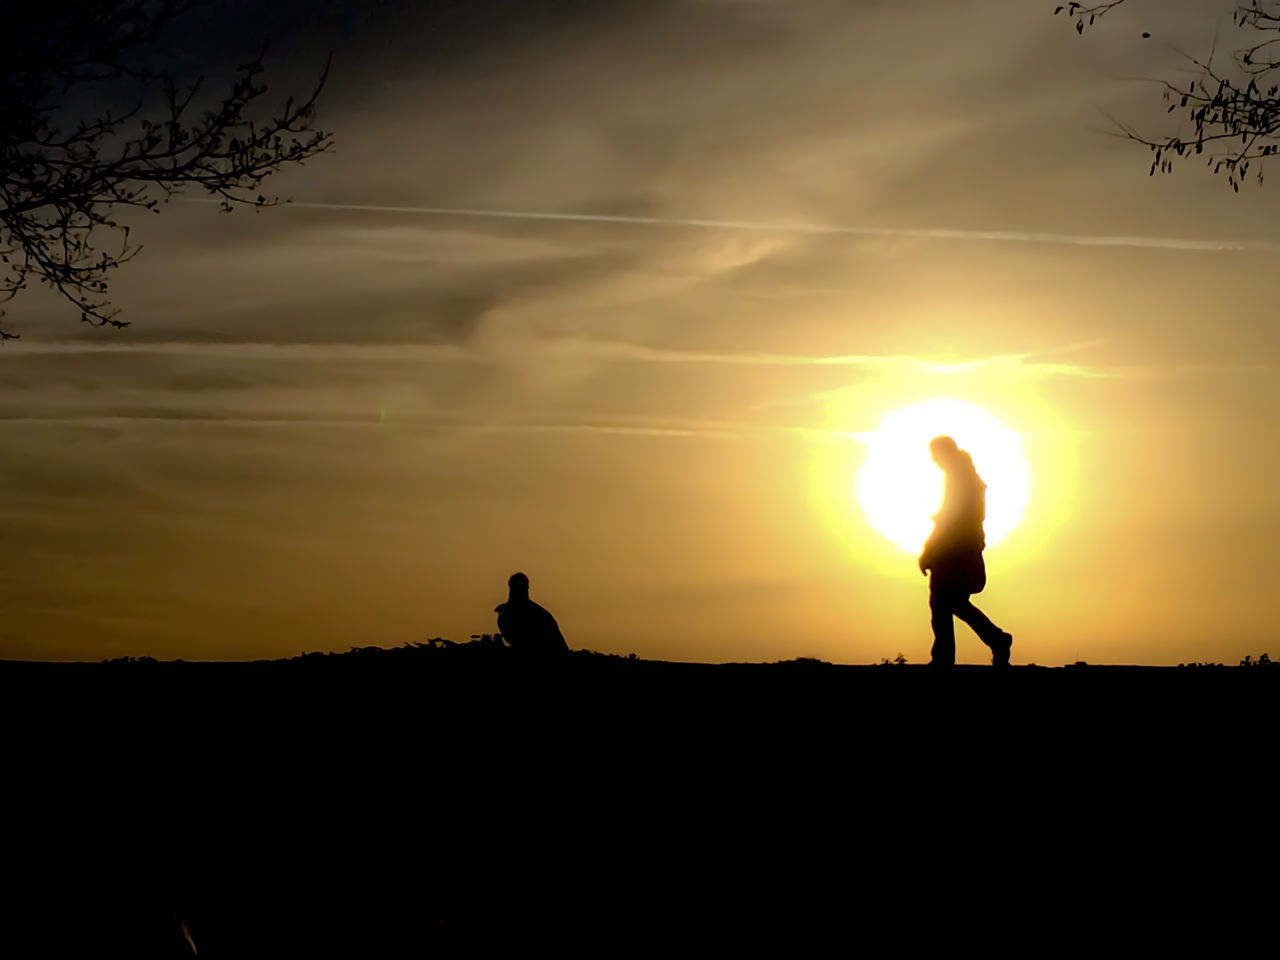 Walking at sunset (edit removed the noise) Baden-Württemberg  Beauty In Nature Bird Cloud - Sky Friendship Germany GERMANY🇩🇪DEUTSCHERLAND@ Nature Only Men Outdoors People Scenics Silhouette Sky Sun Sunset Togetherness Two People Surrealism Surreal Dreamlike